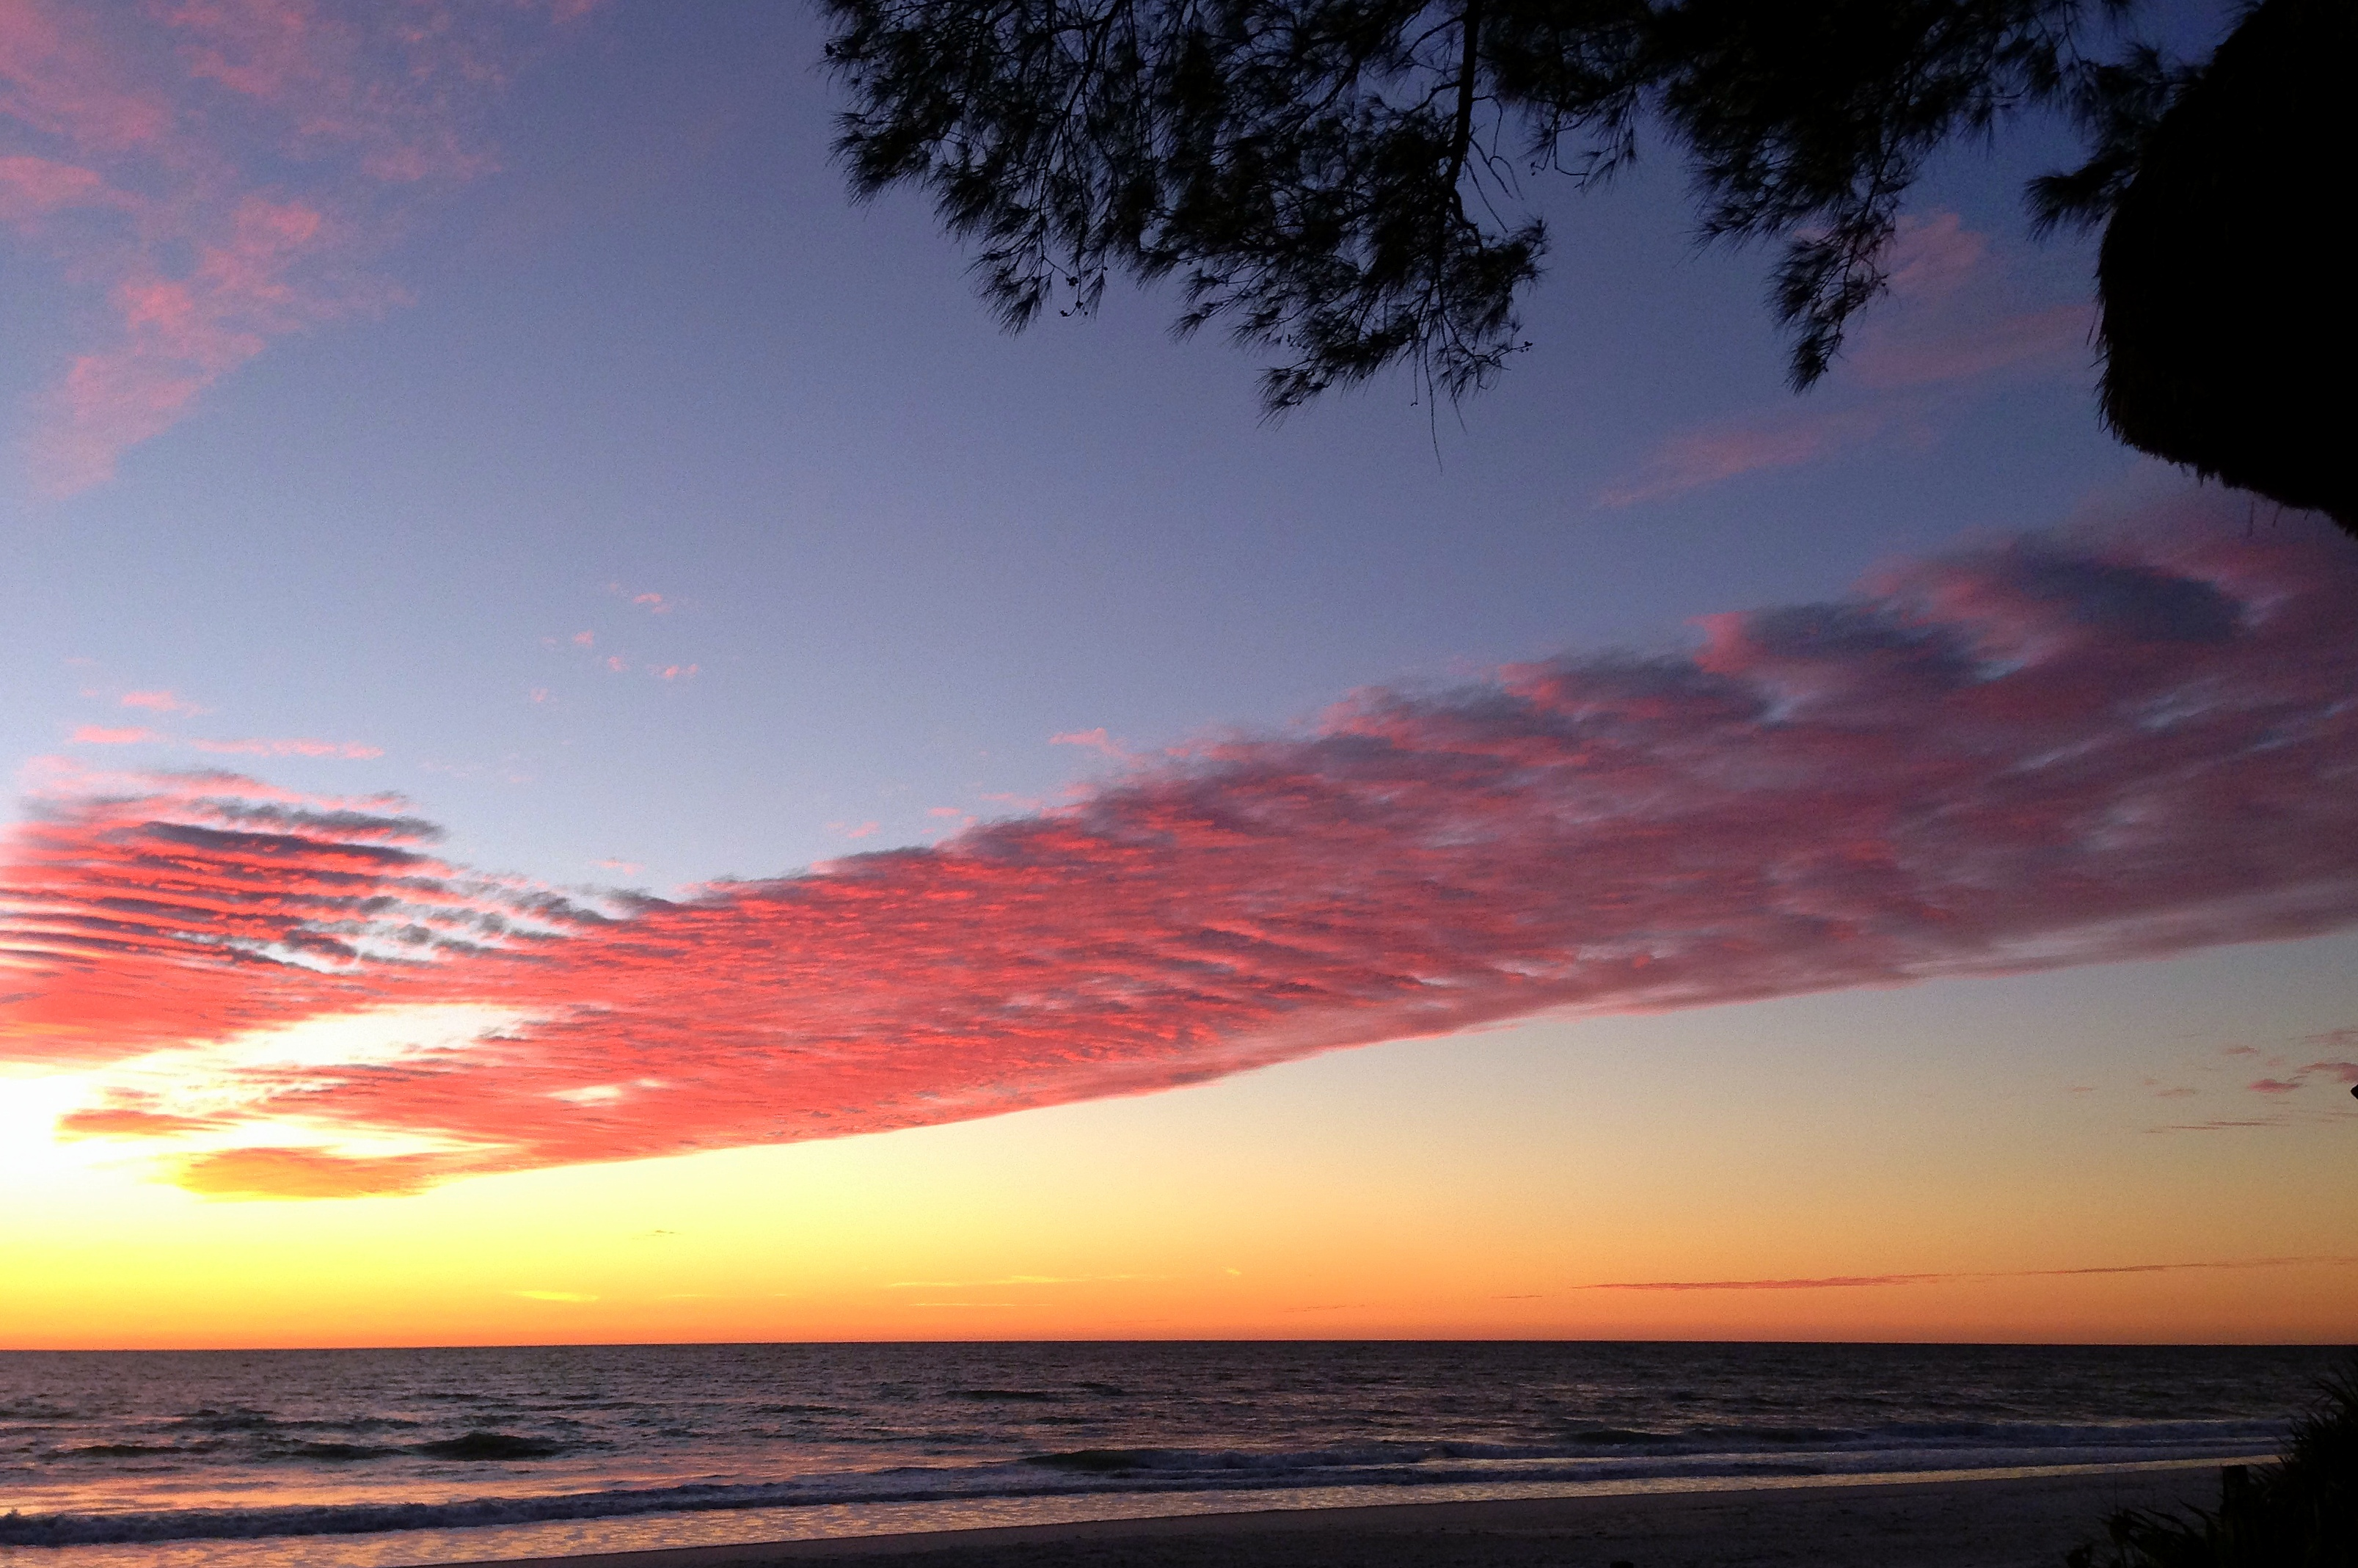 Sunset, Anna Maria Island beach (2)